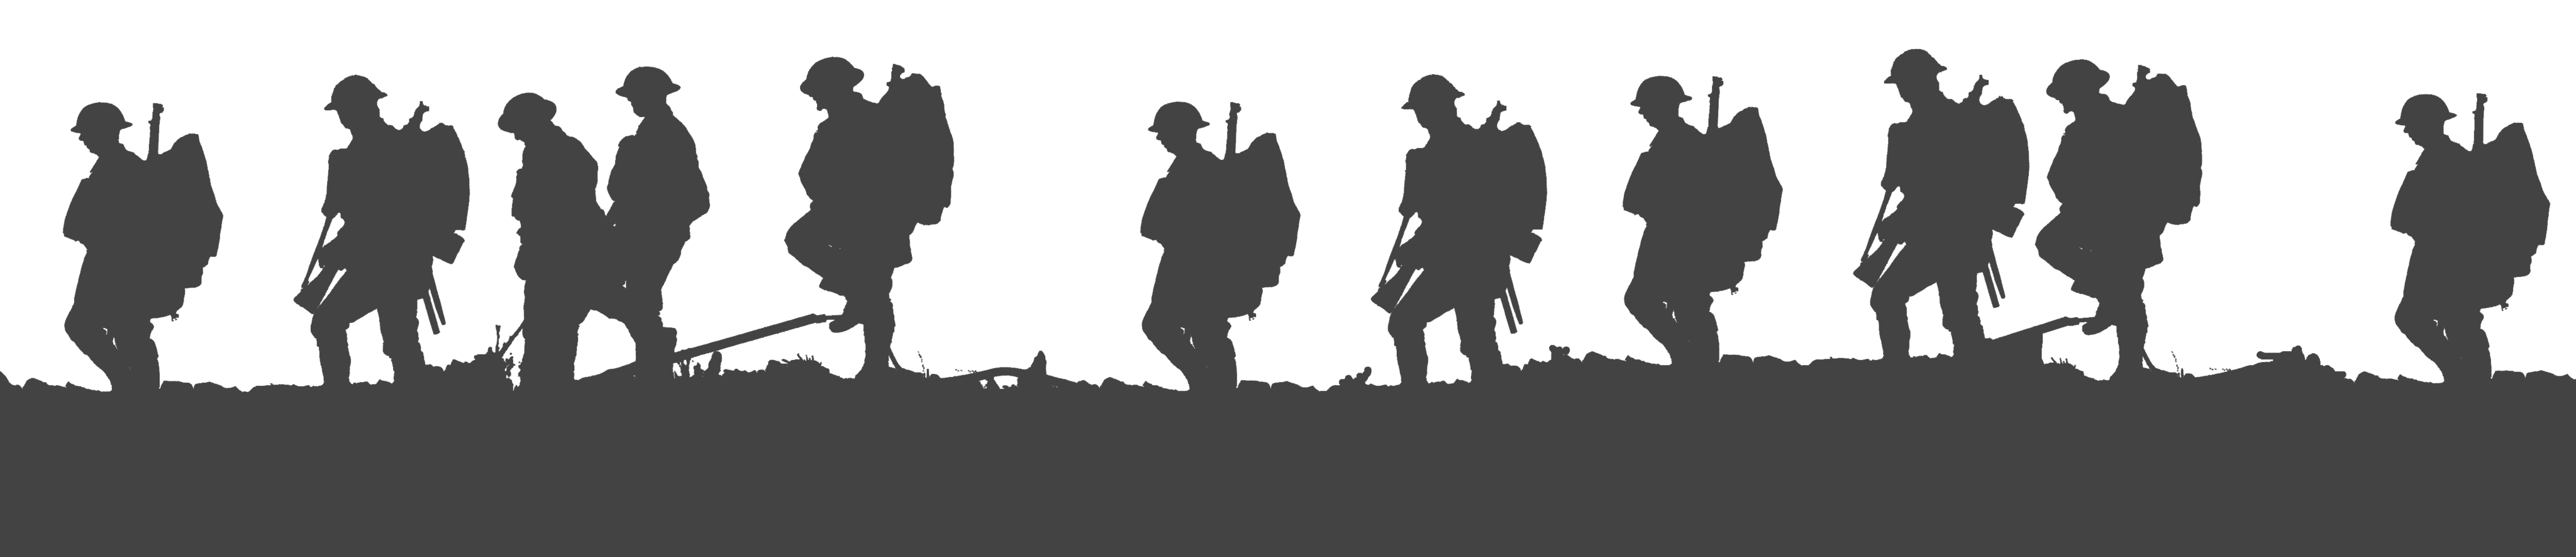 Lest we forget First World War Soldier Silhouette Military ... - U.S. Soldier Silhouette